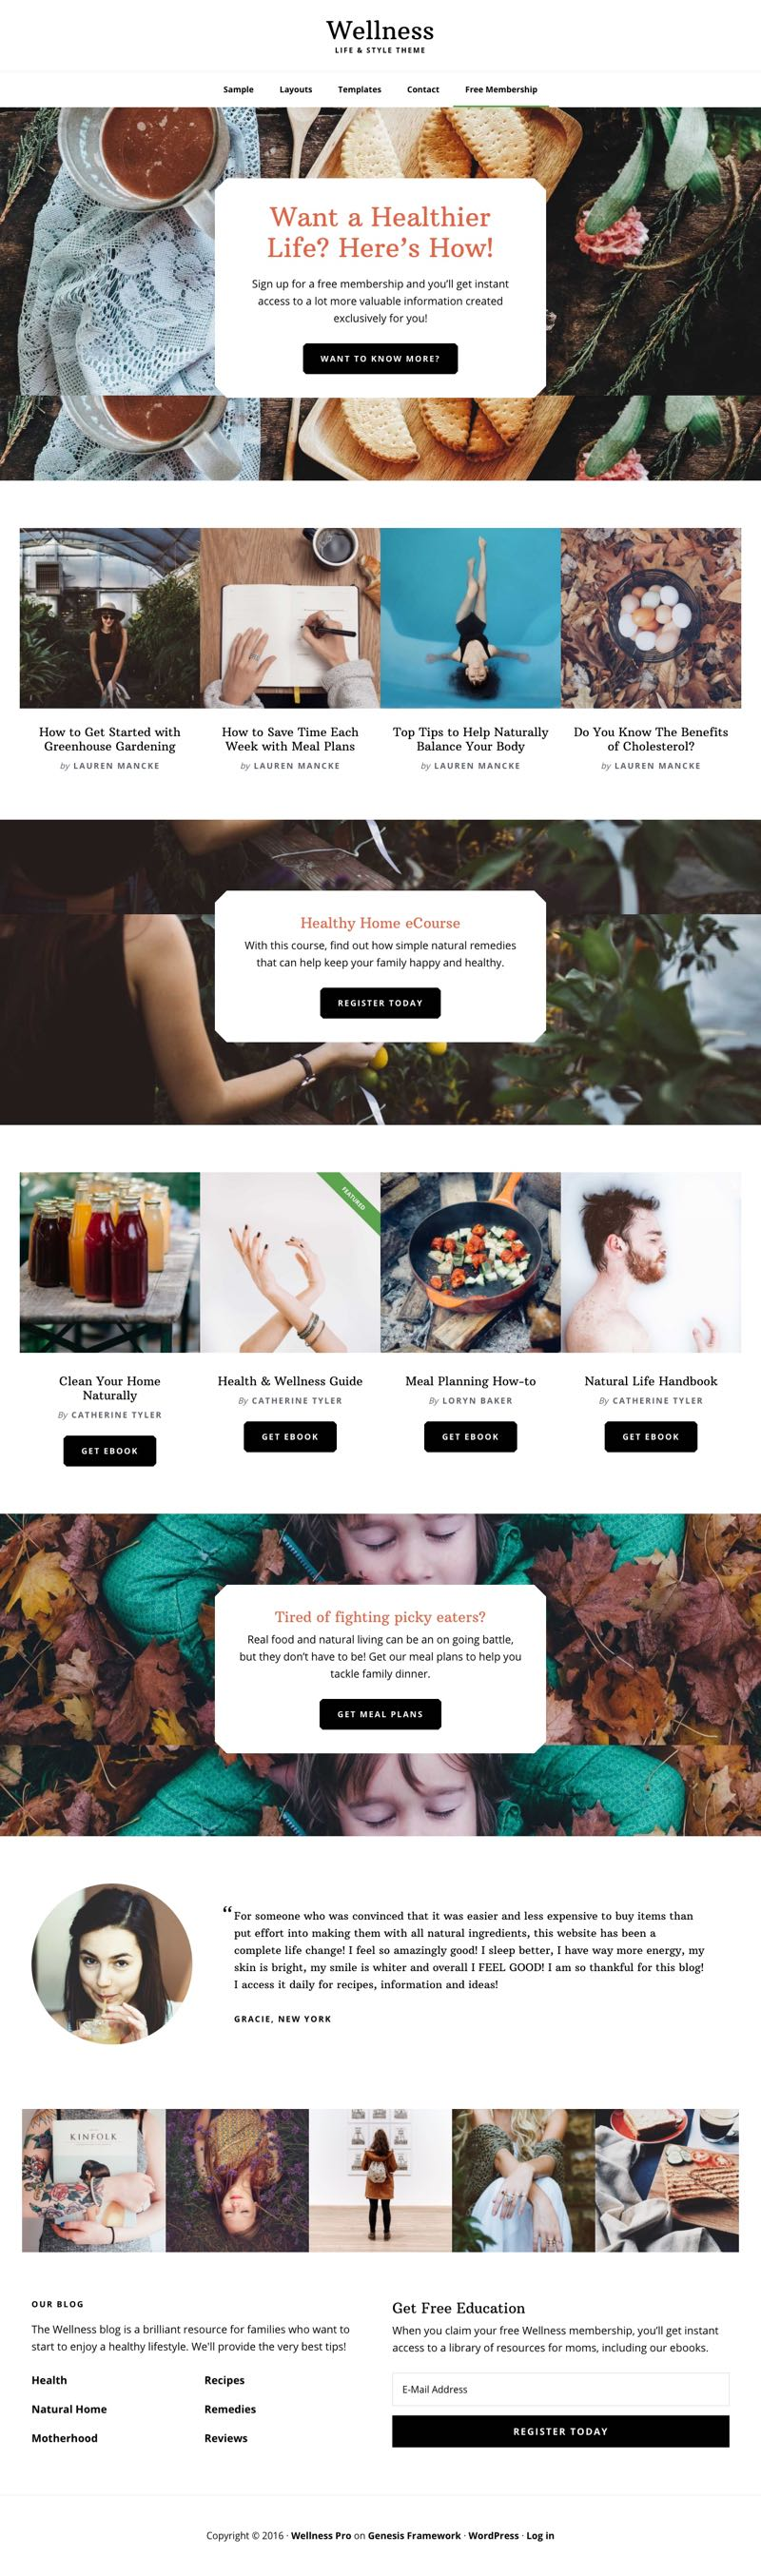 Wellness Pro WordPress Health & Life Style Theme